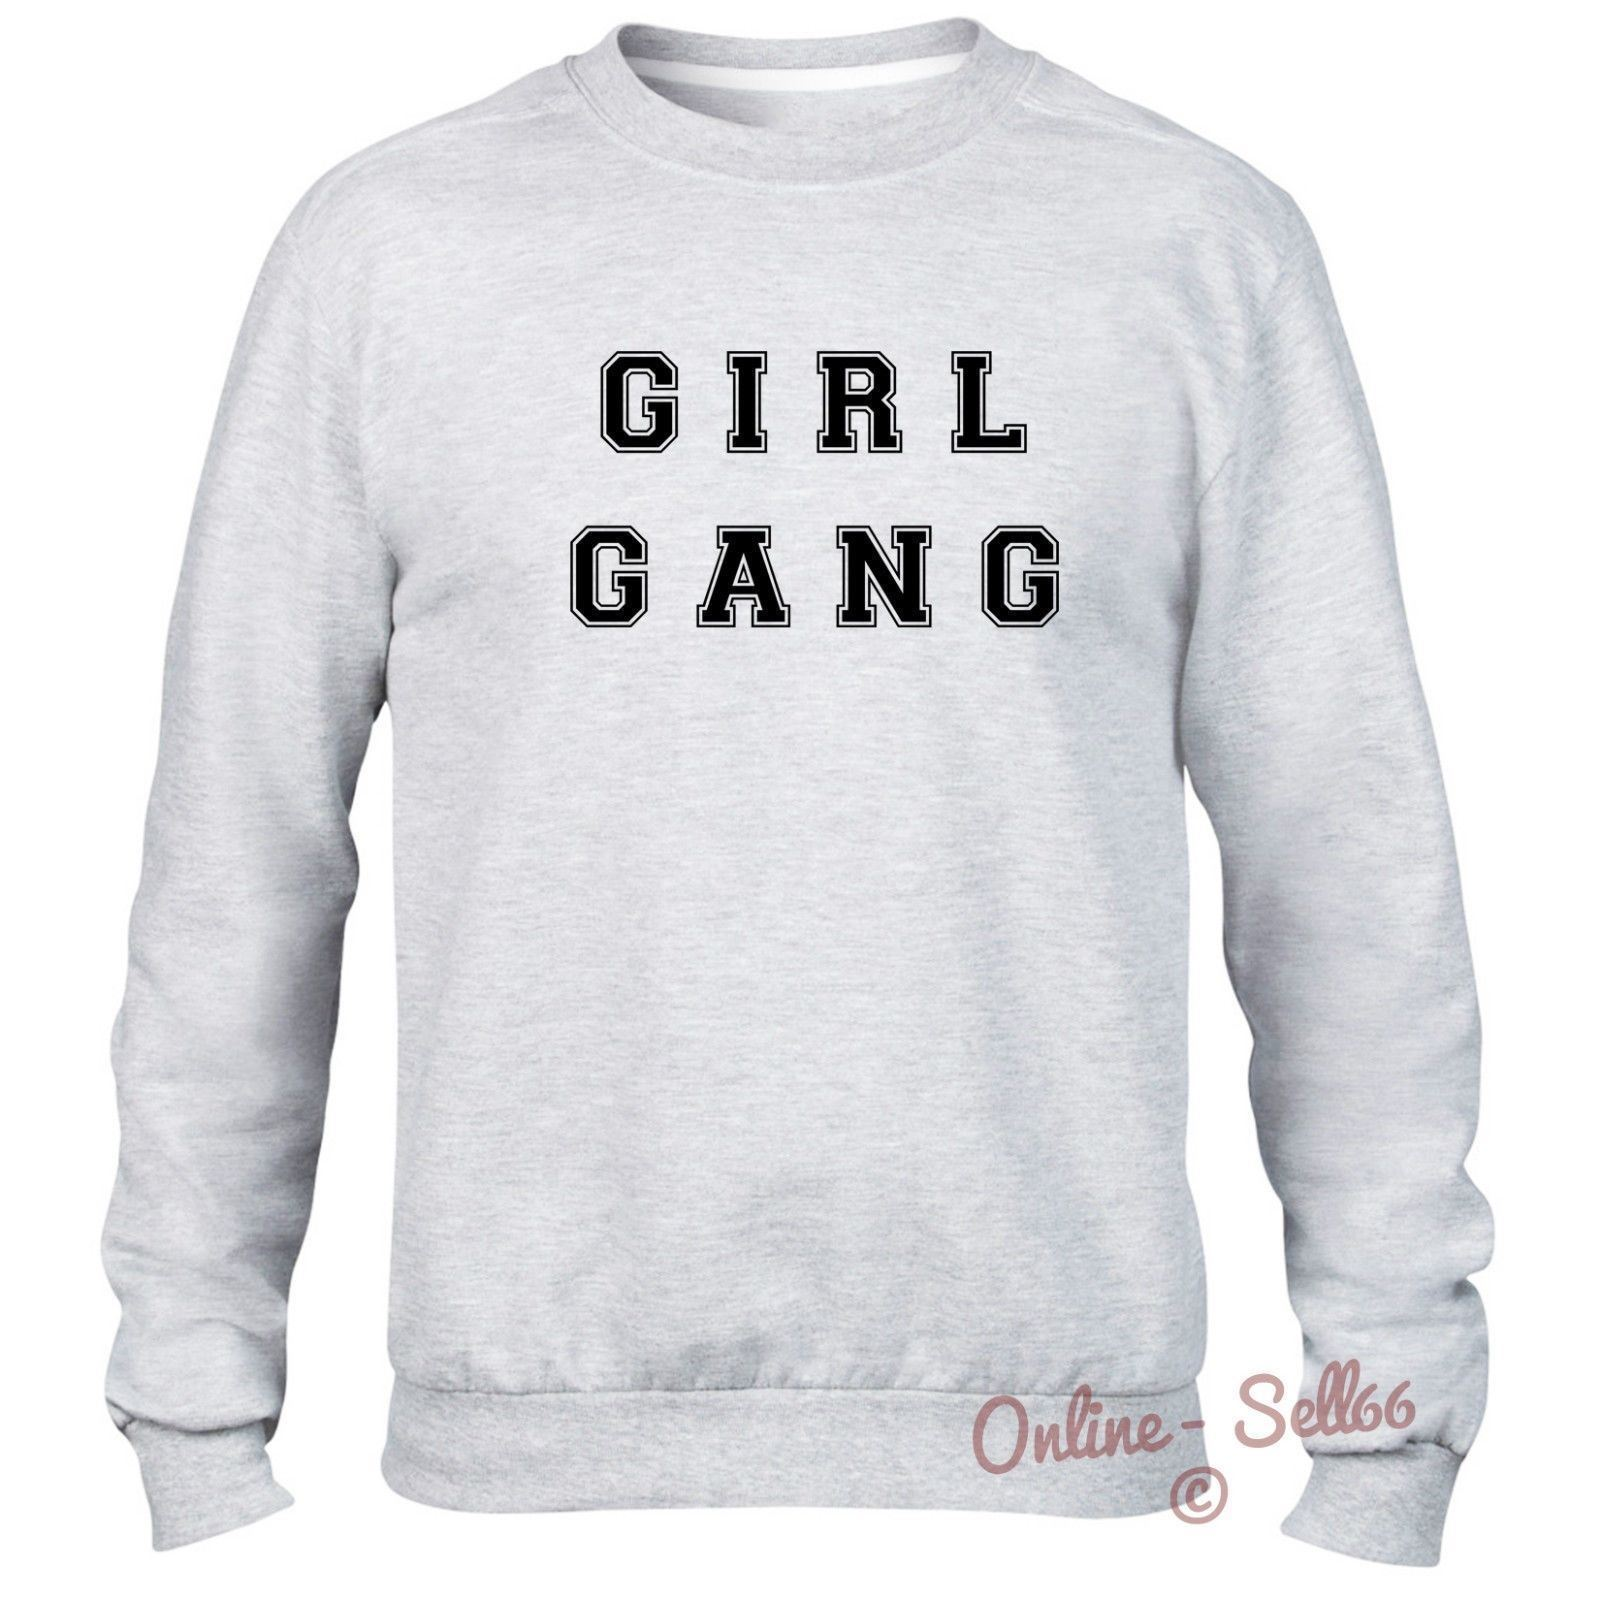 Girl Gang Sweater Warm Cold Winter Indie Swag Mens Womens Unisex Hipster  Tumblr